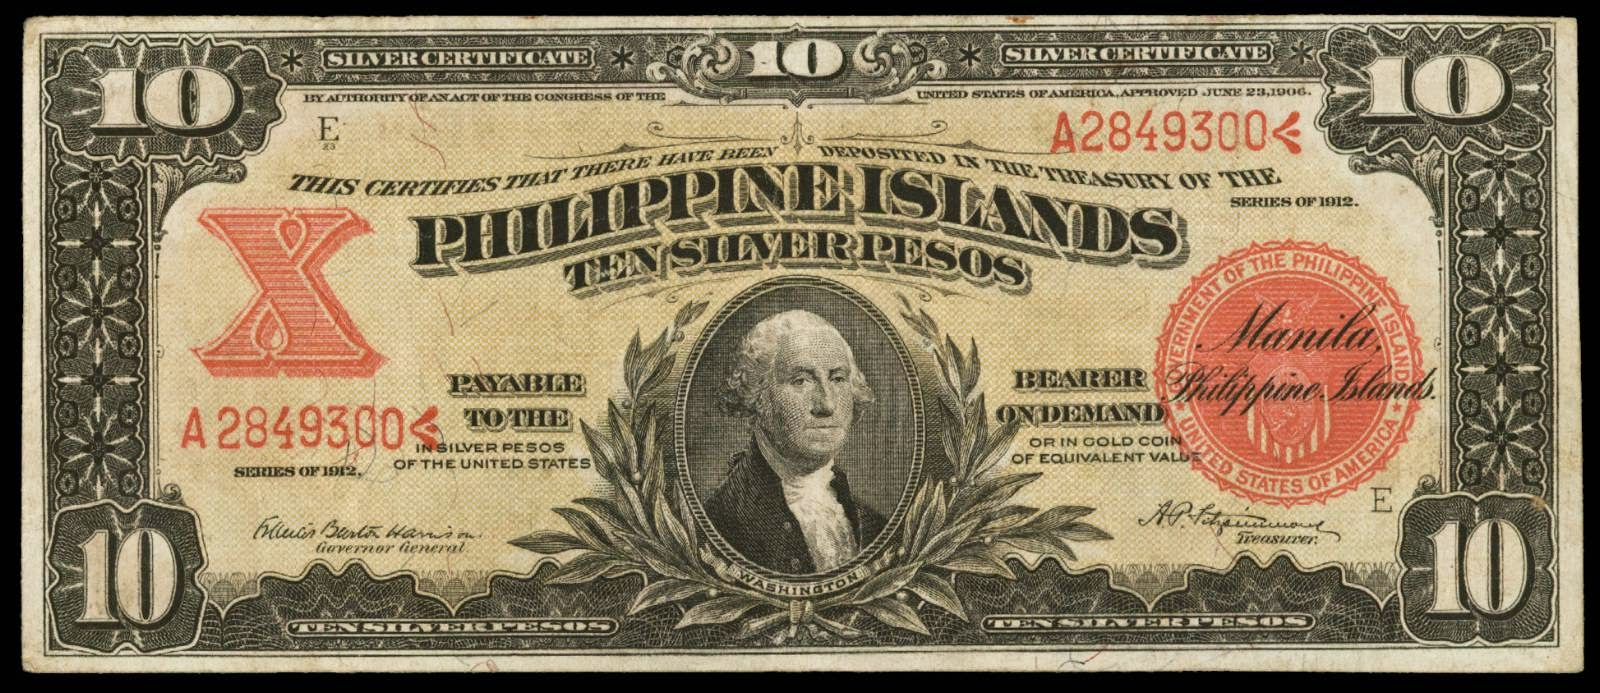 Philippine Islands 10 Pesos note Silver Certificate 1912 George Washington